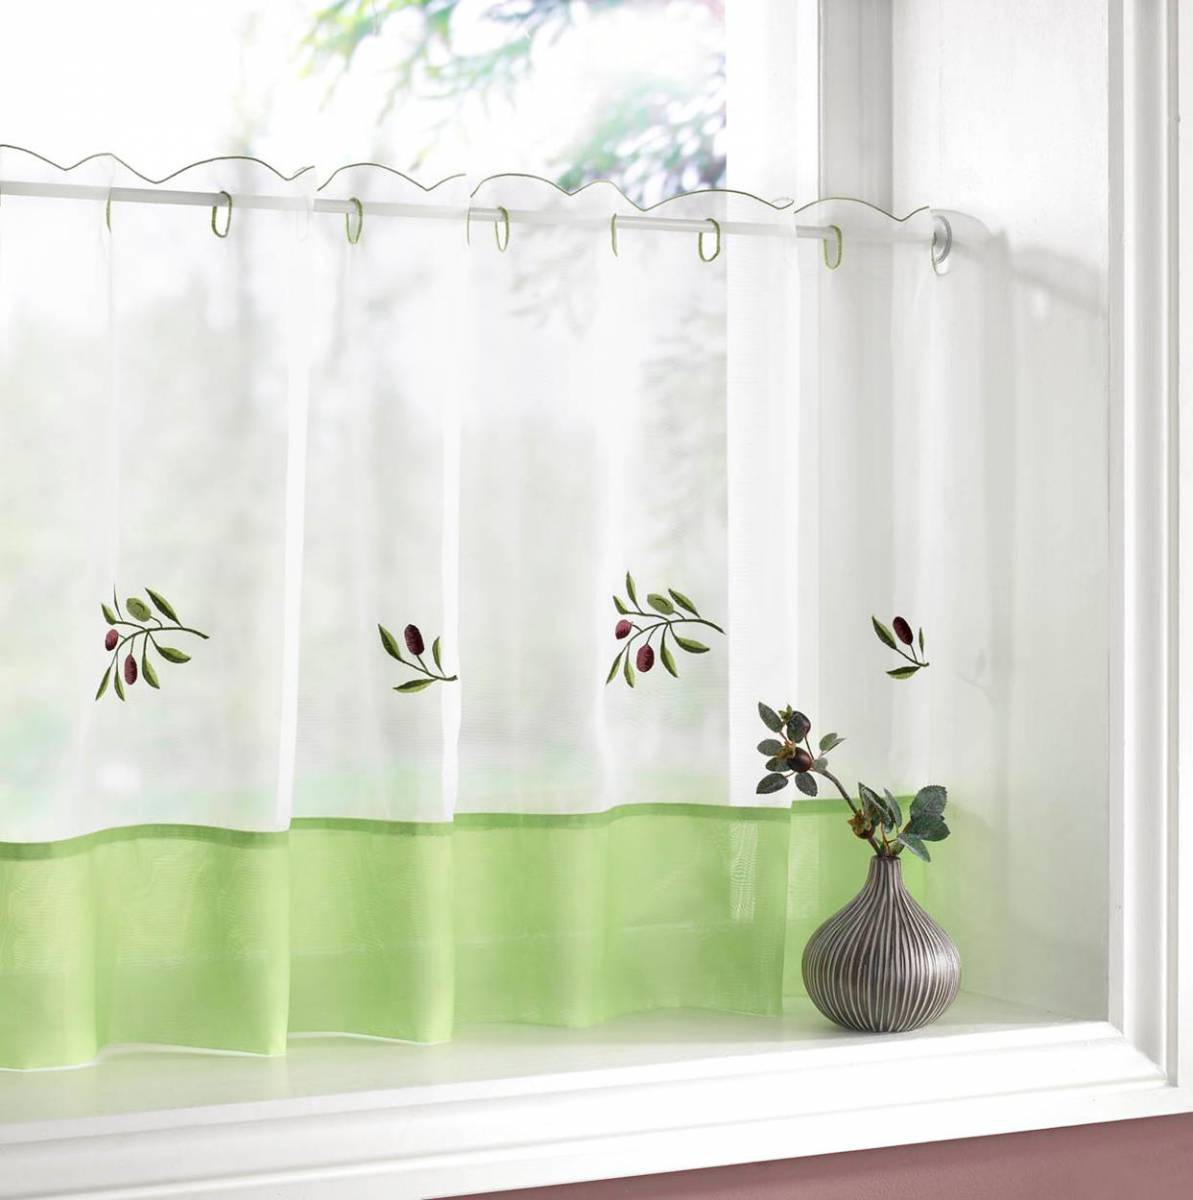 Olives Kitchen Textiles Range Net Curtain 2 Curtains